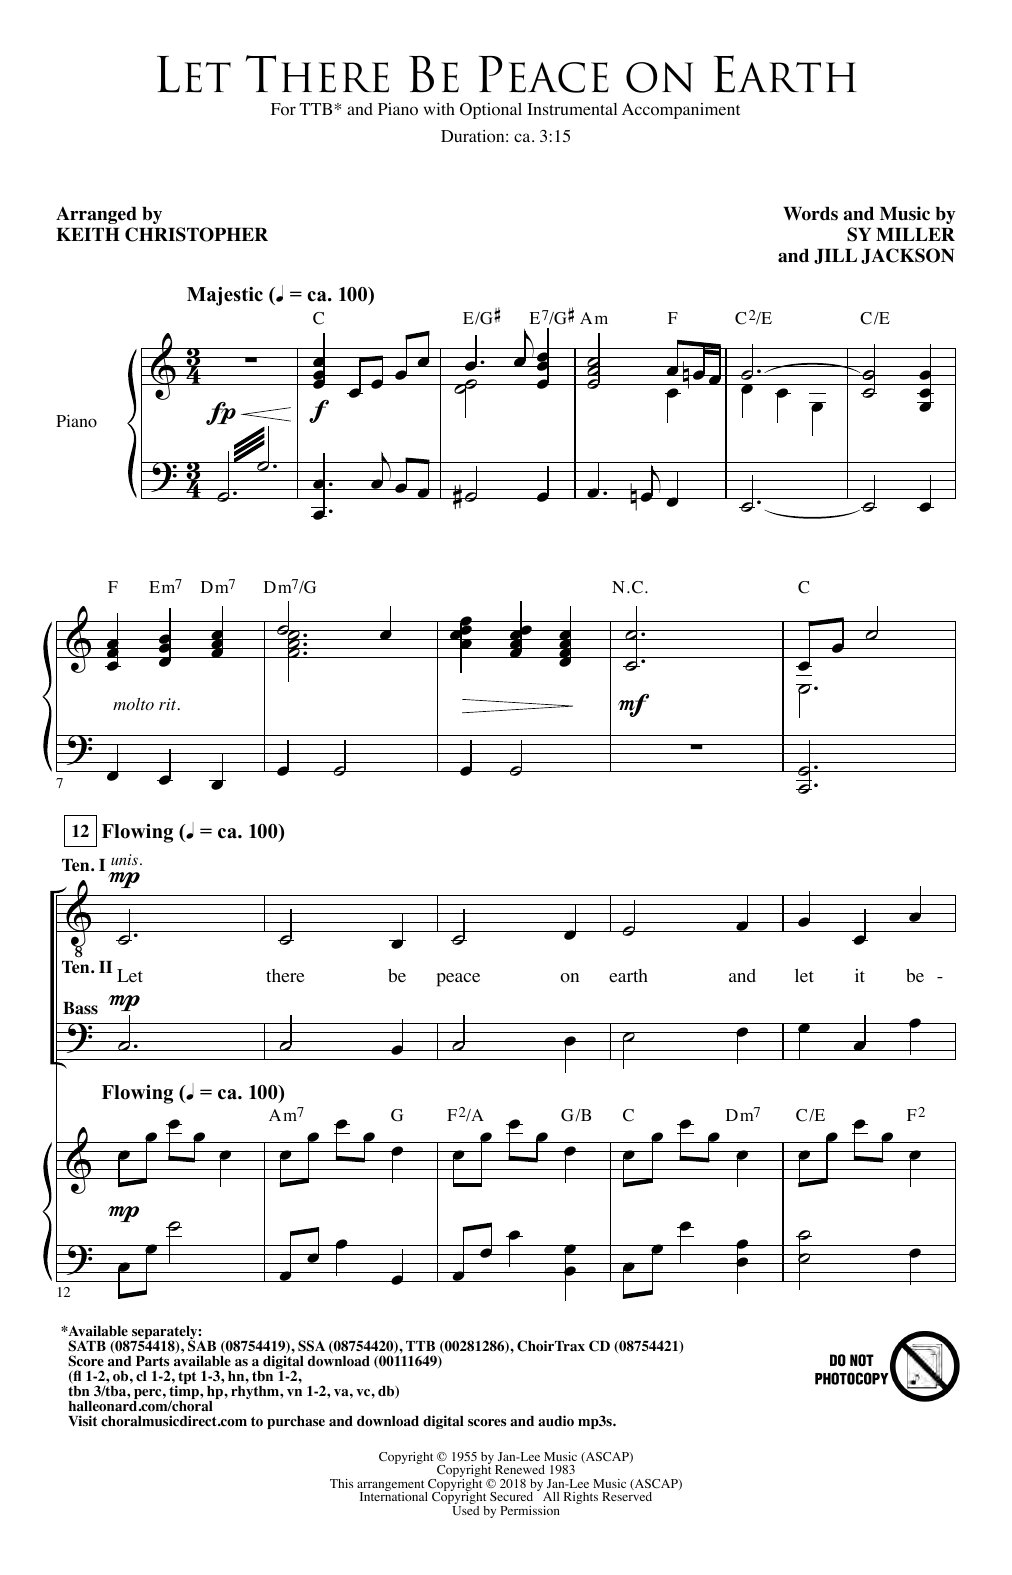 Let There Be Peace On Earth (arr. Keith Christopher) (TTB Choir)